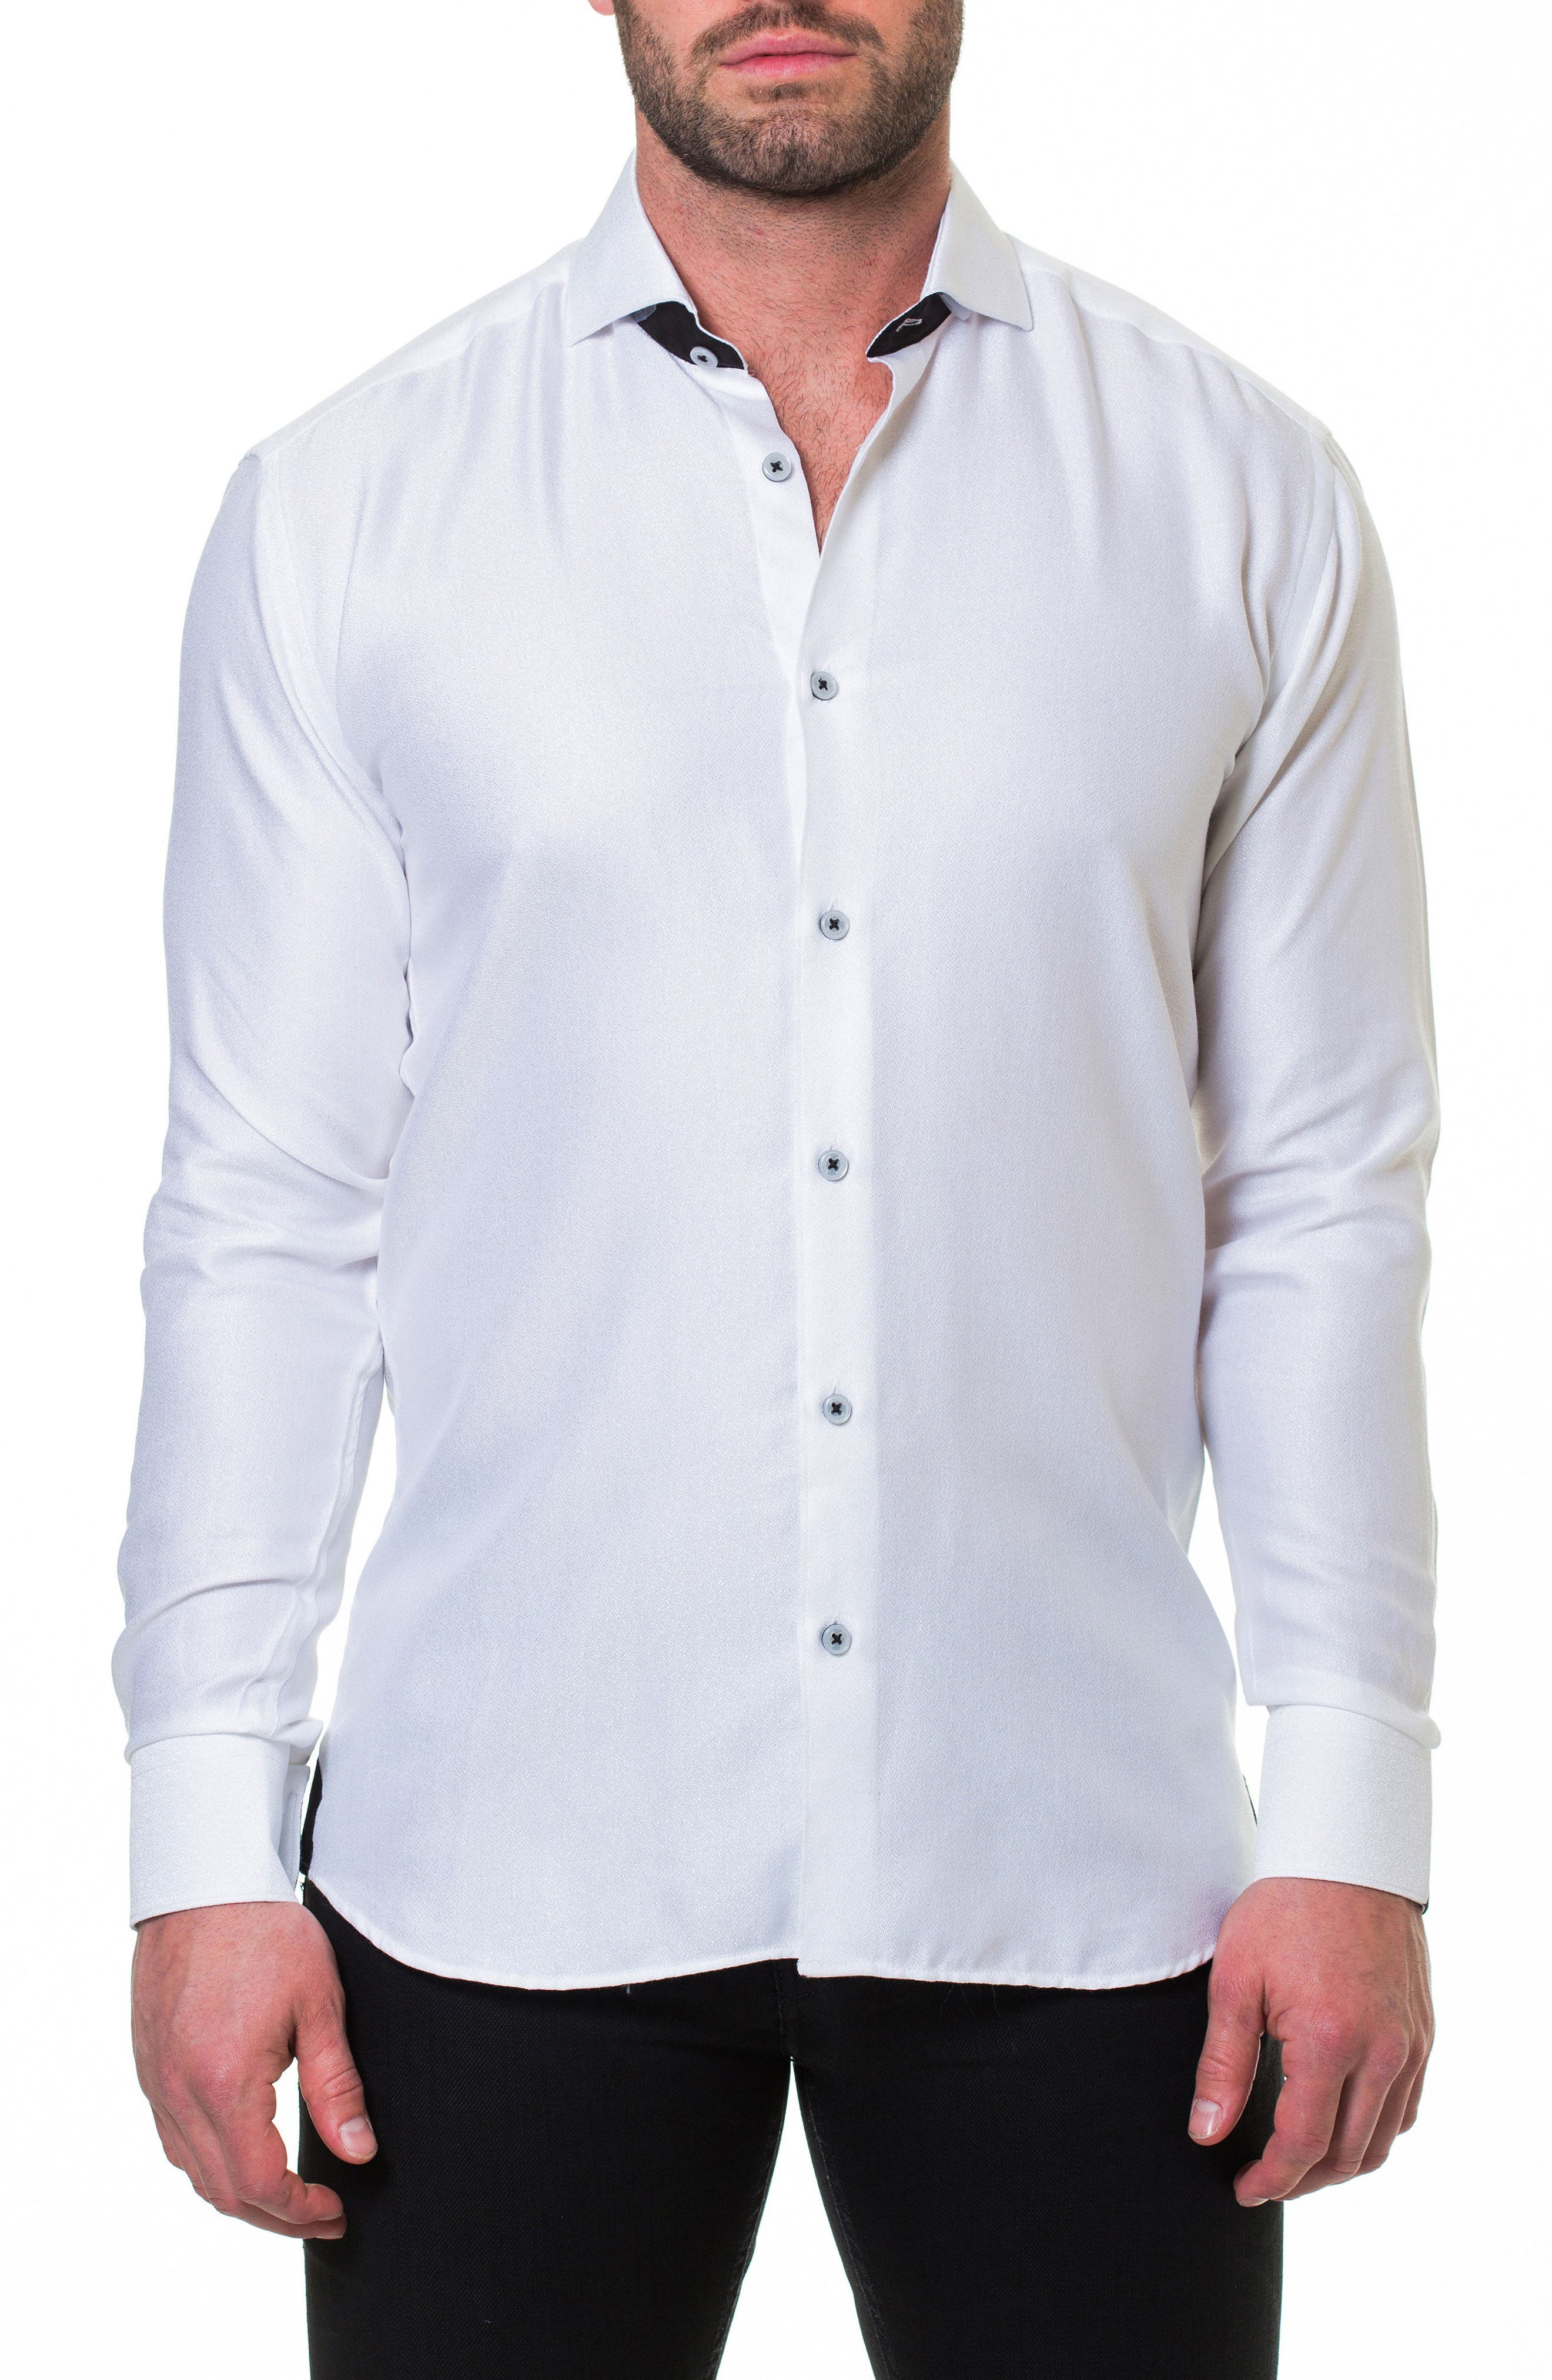 Wall Street Serenity White Slim Fit Sport Shirt,                         Main,                         color, White